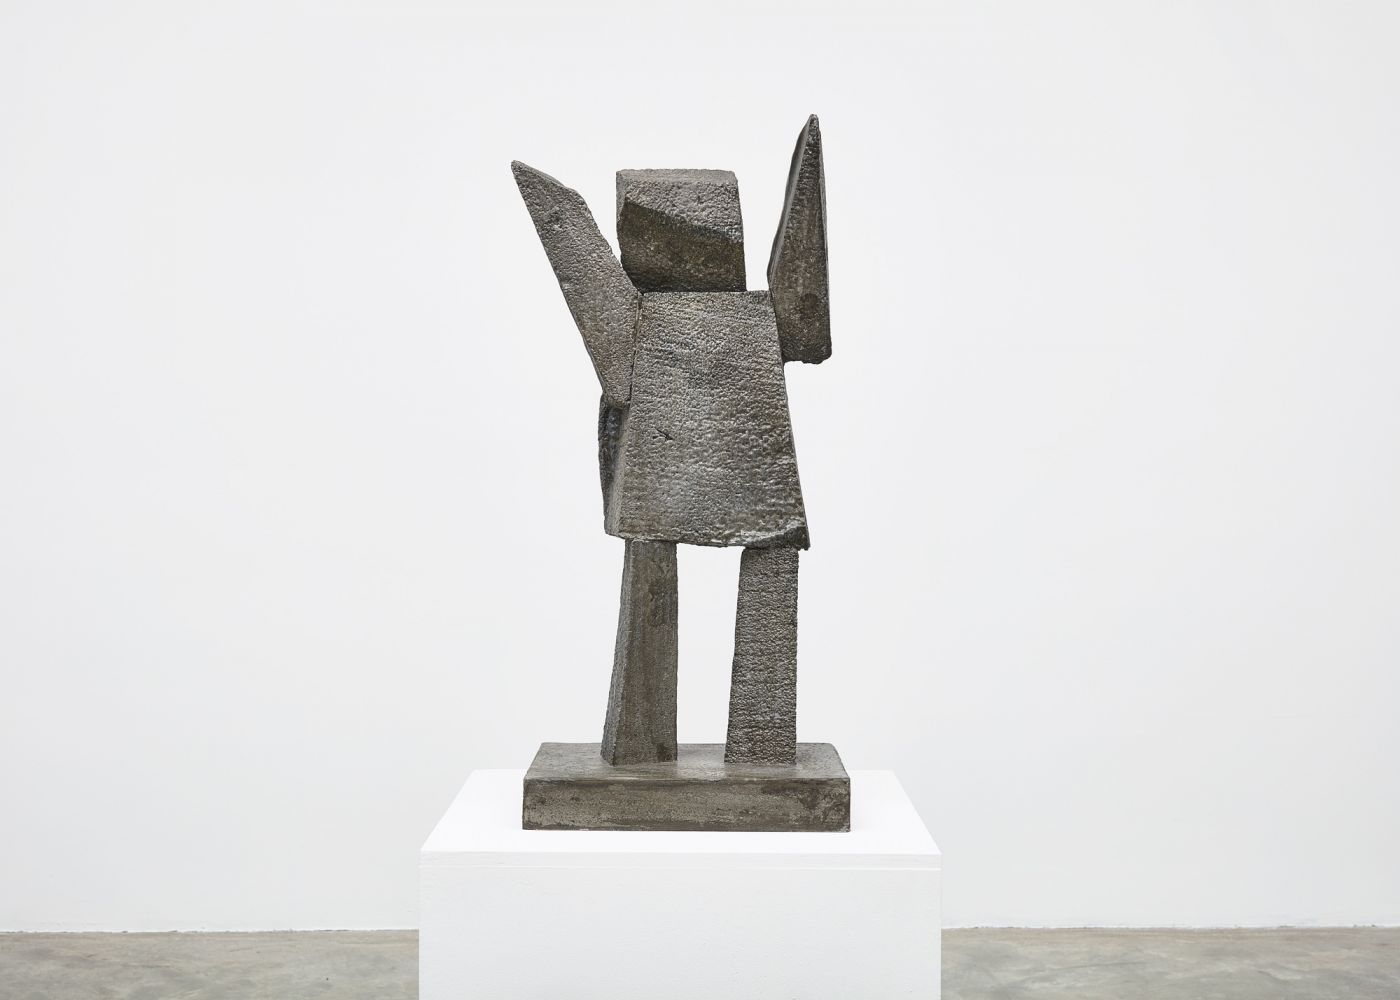 Gimhongsok (b. 1964) Surrender - Thomas, 2018 High-strength grout cement 37.01 x 16.93 x 11.81 inches 94 x 43 x 30 cm Edition 1/3, 2AP